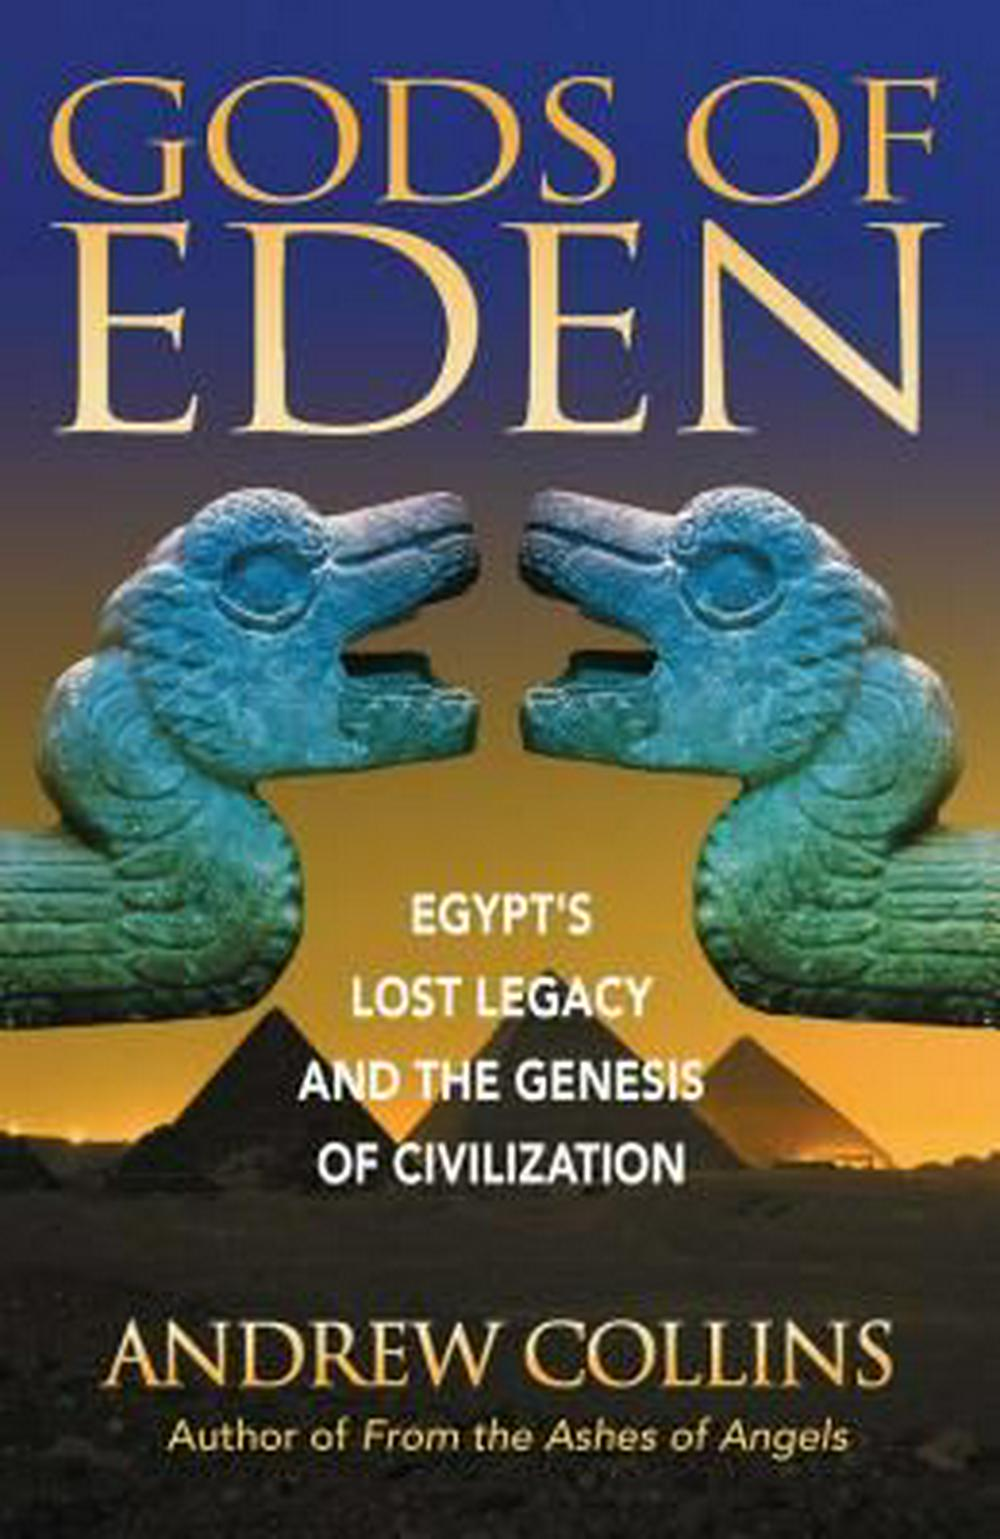 Gods of Eden: Egypt's Lost Legacy and the Genesis of Civilization by Andrew Collins, ISBN: 9781879181762